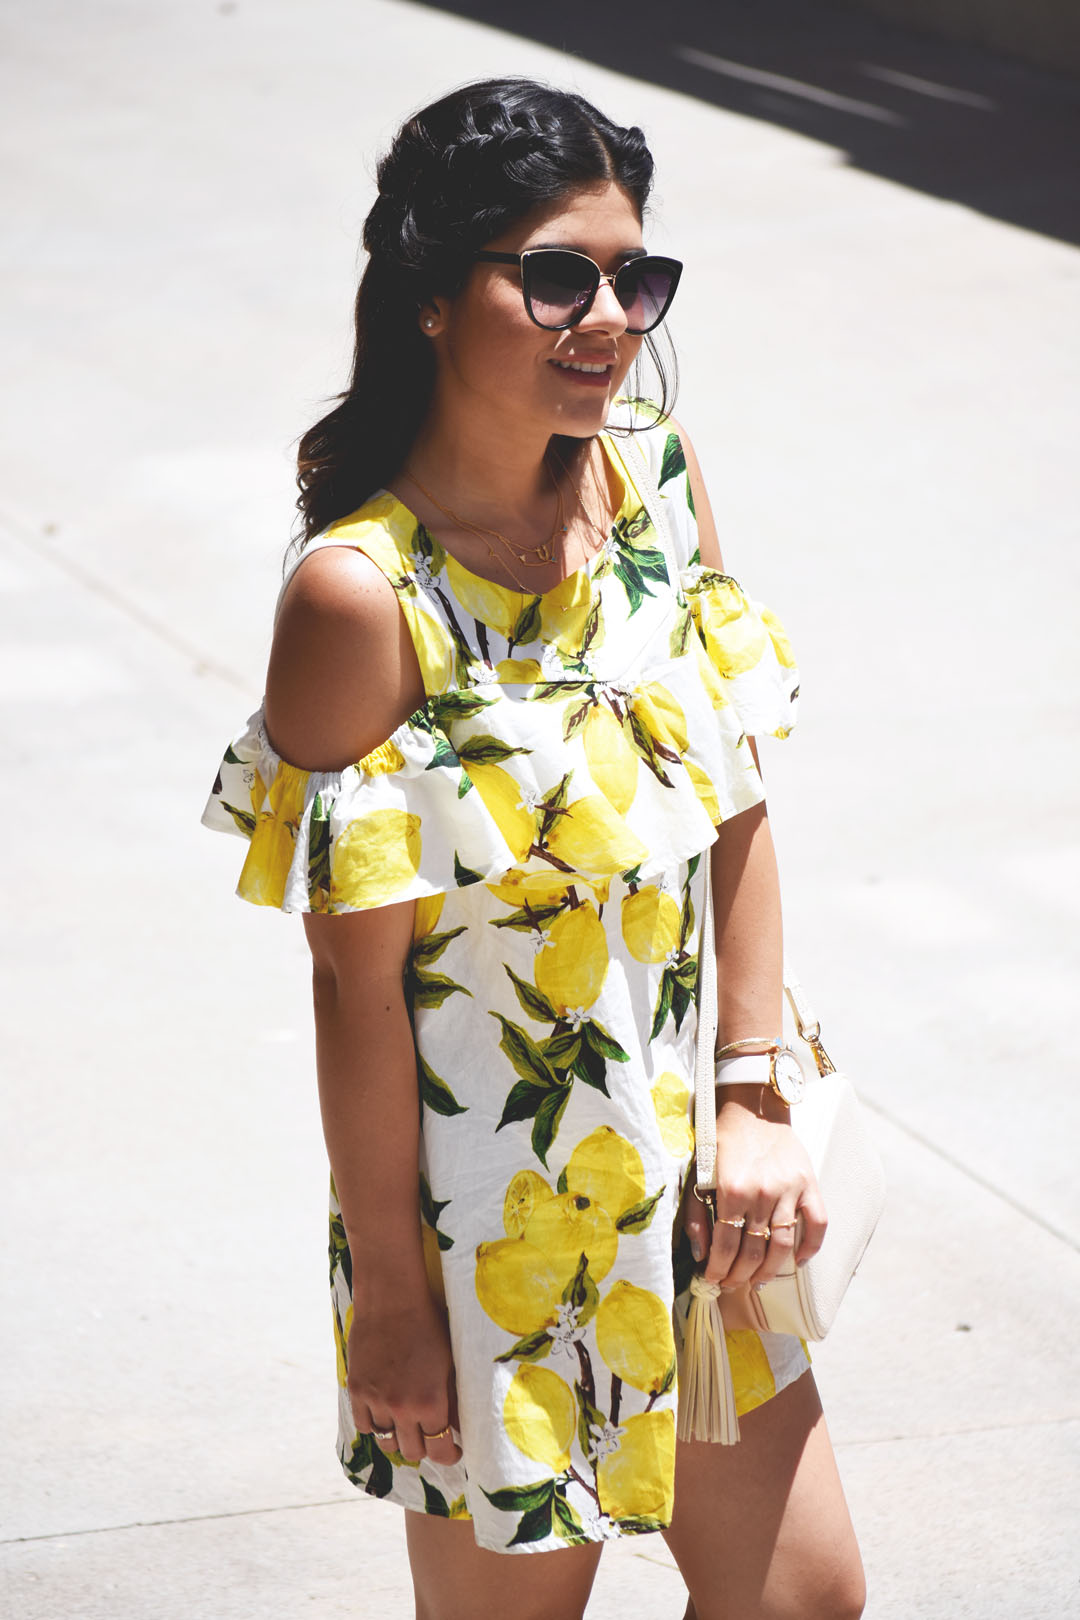 Carolina Hellal of Chic Talk wearing a Romwe summer lemon printed dress, Nordstrom sunglasses, and H&M beige crossbody bag with tassels.